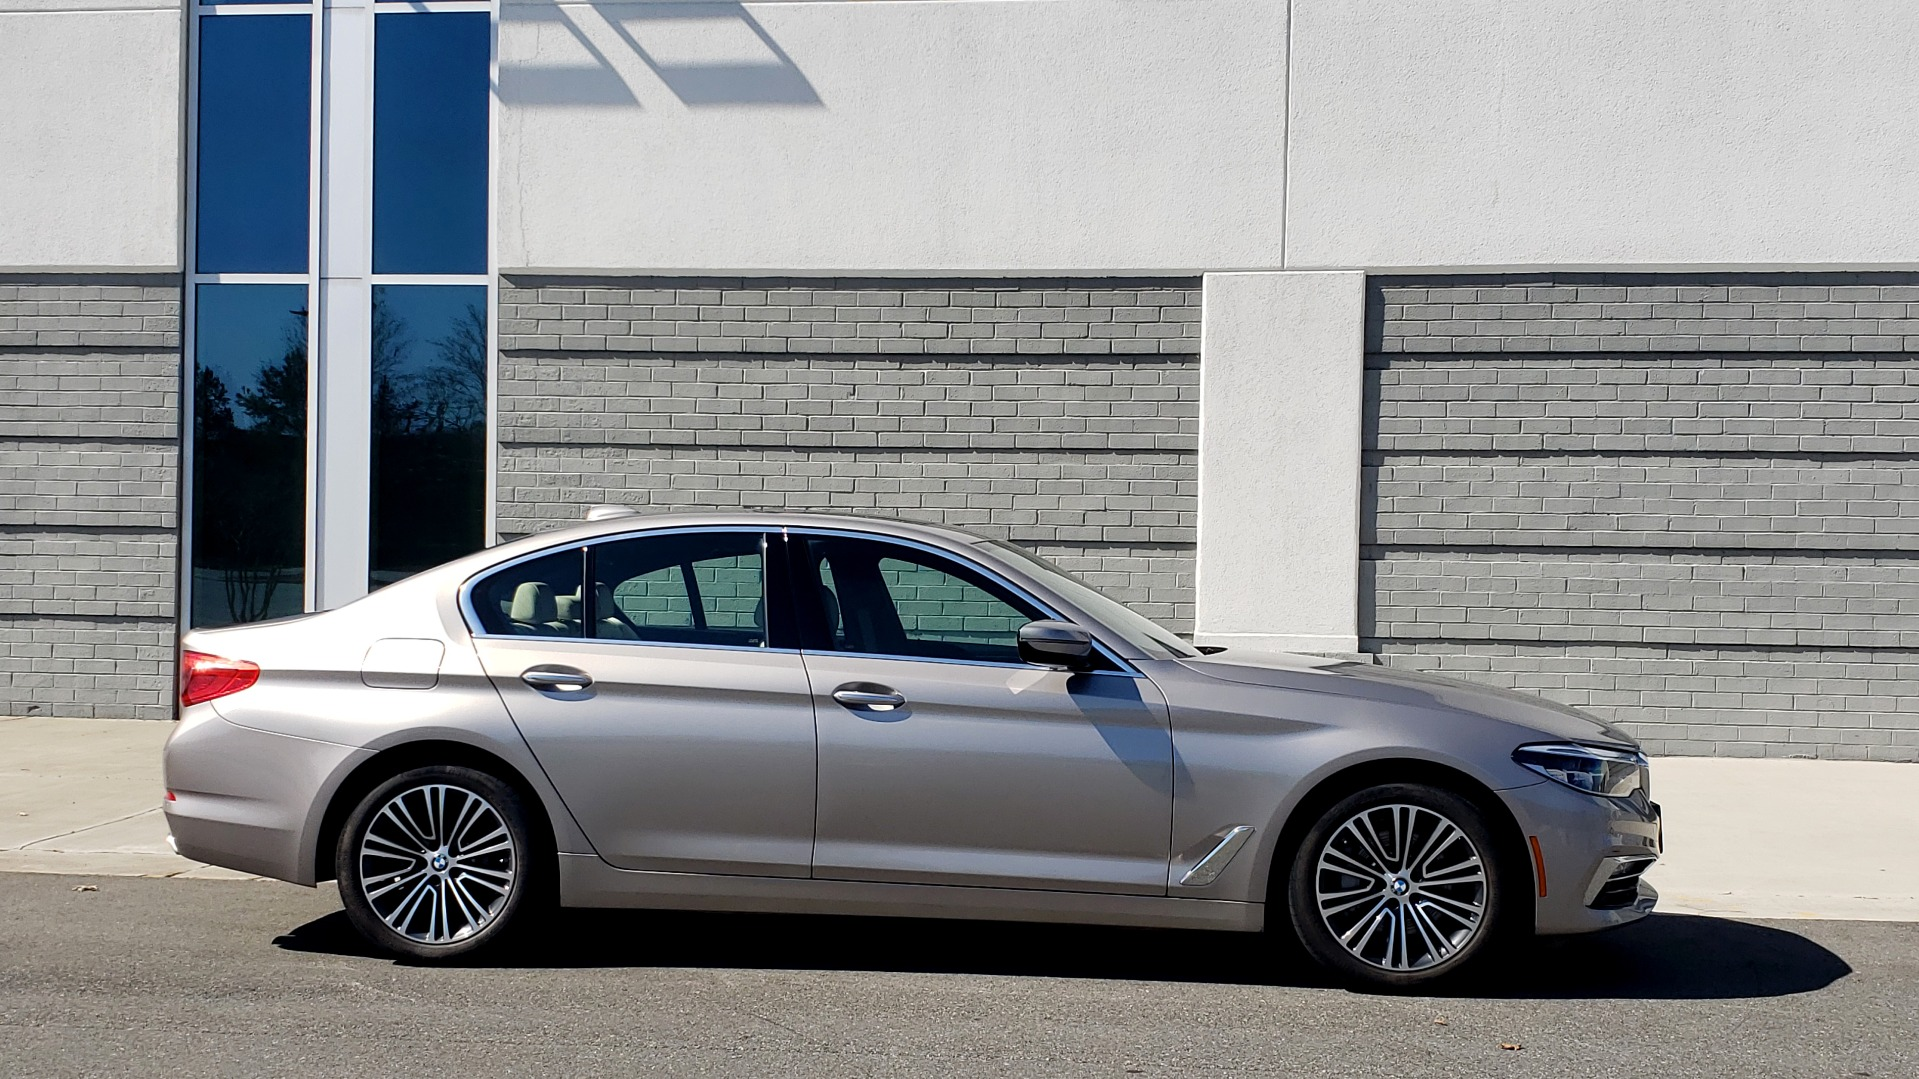 Used 2018 BMW 5 SERIES 540IXDRIVE PREMIUM / DRVR ASST PLUS / LUX PKG / APPLE CARPLAY for sale Sold at Formula Imports in Charlotte NC 28227 6